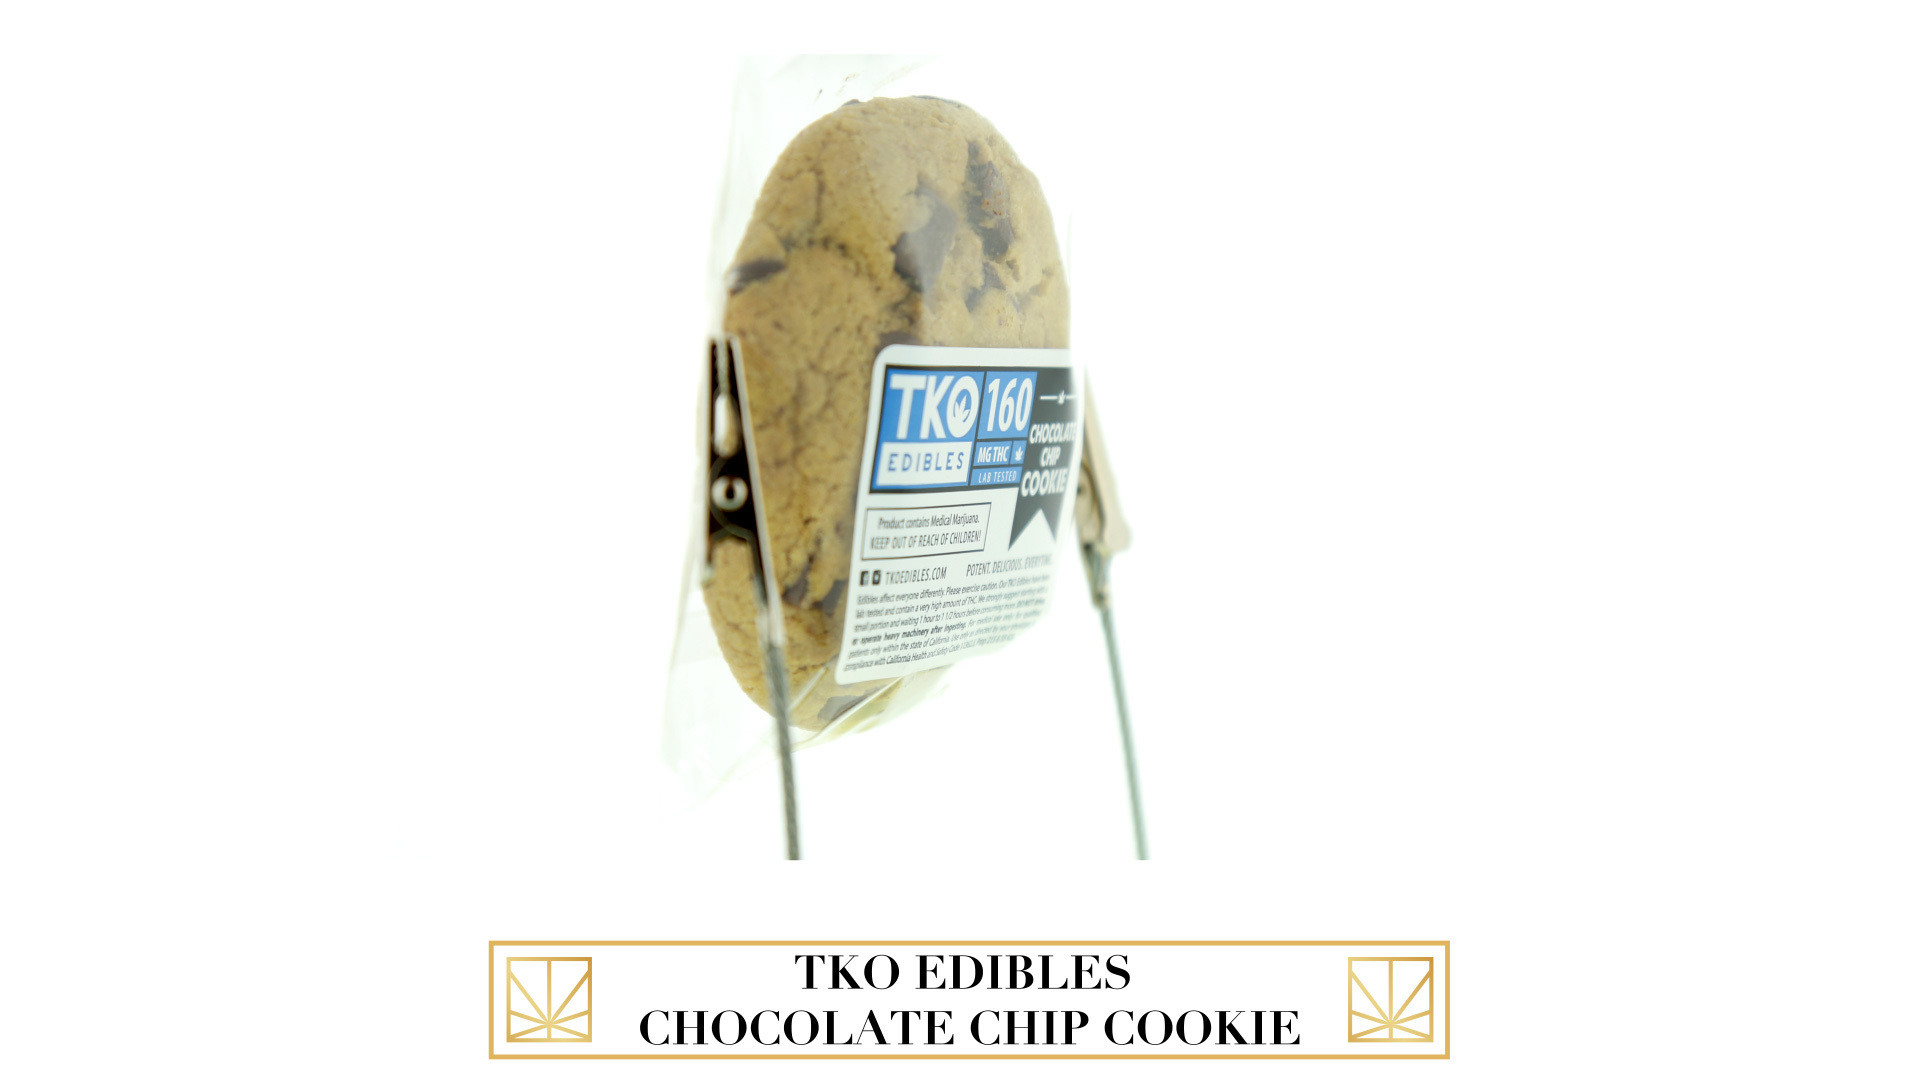 TKO Edibles Chocolate Chip Cookie